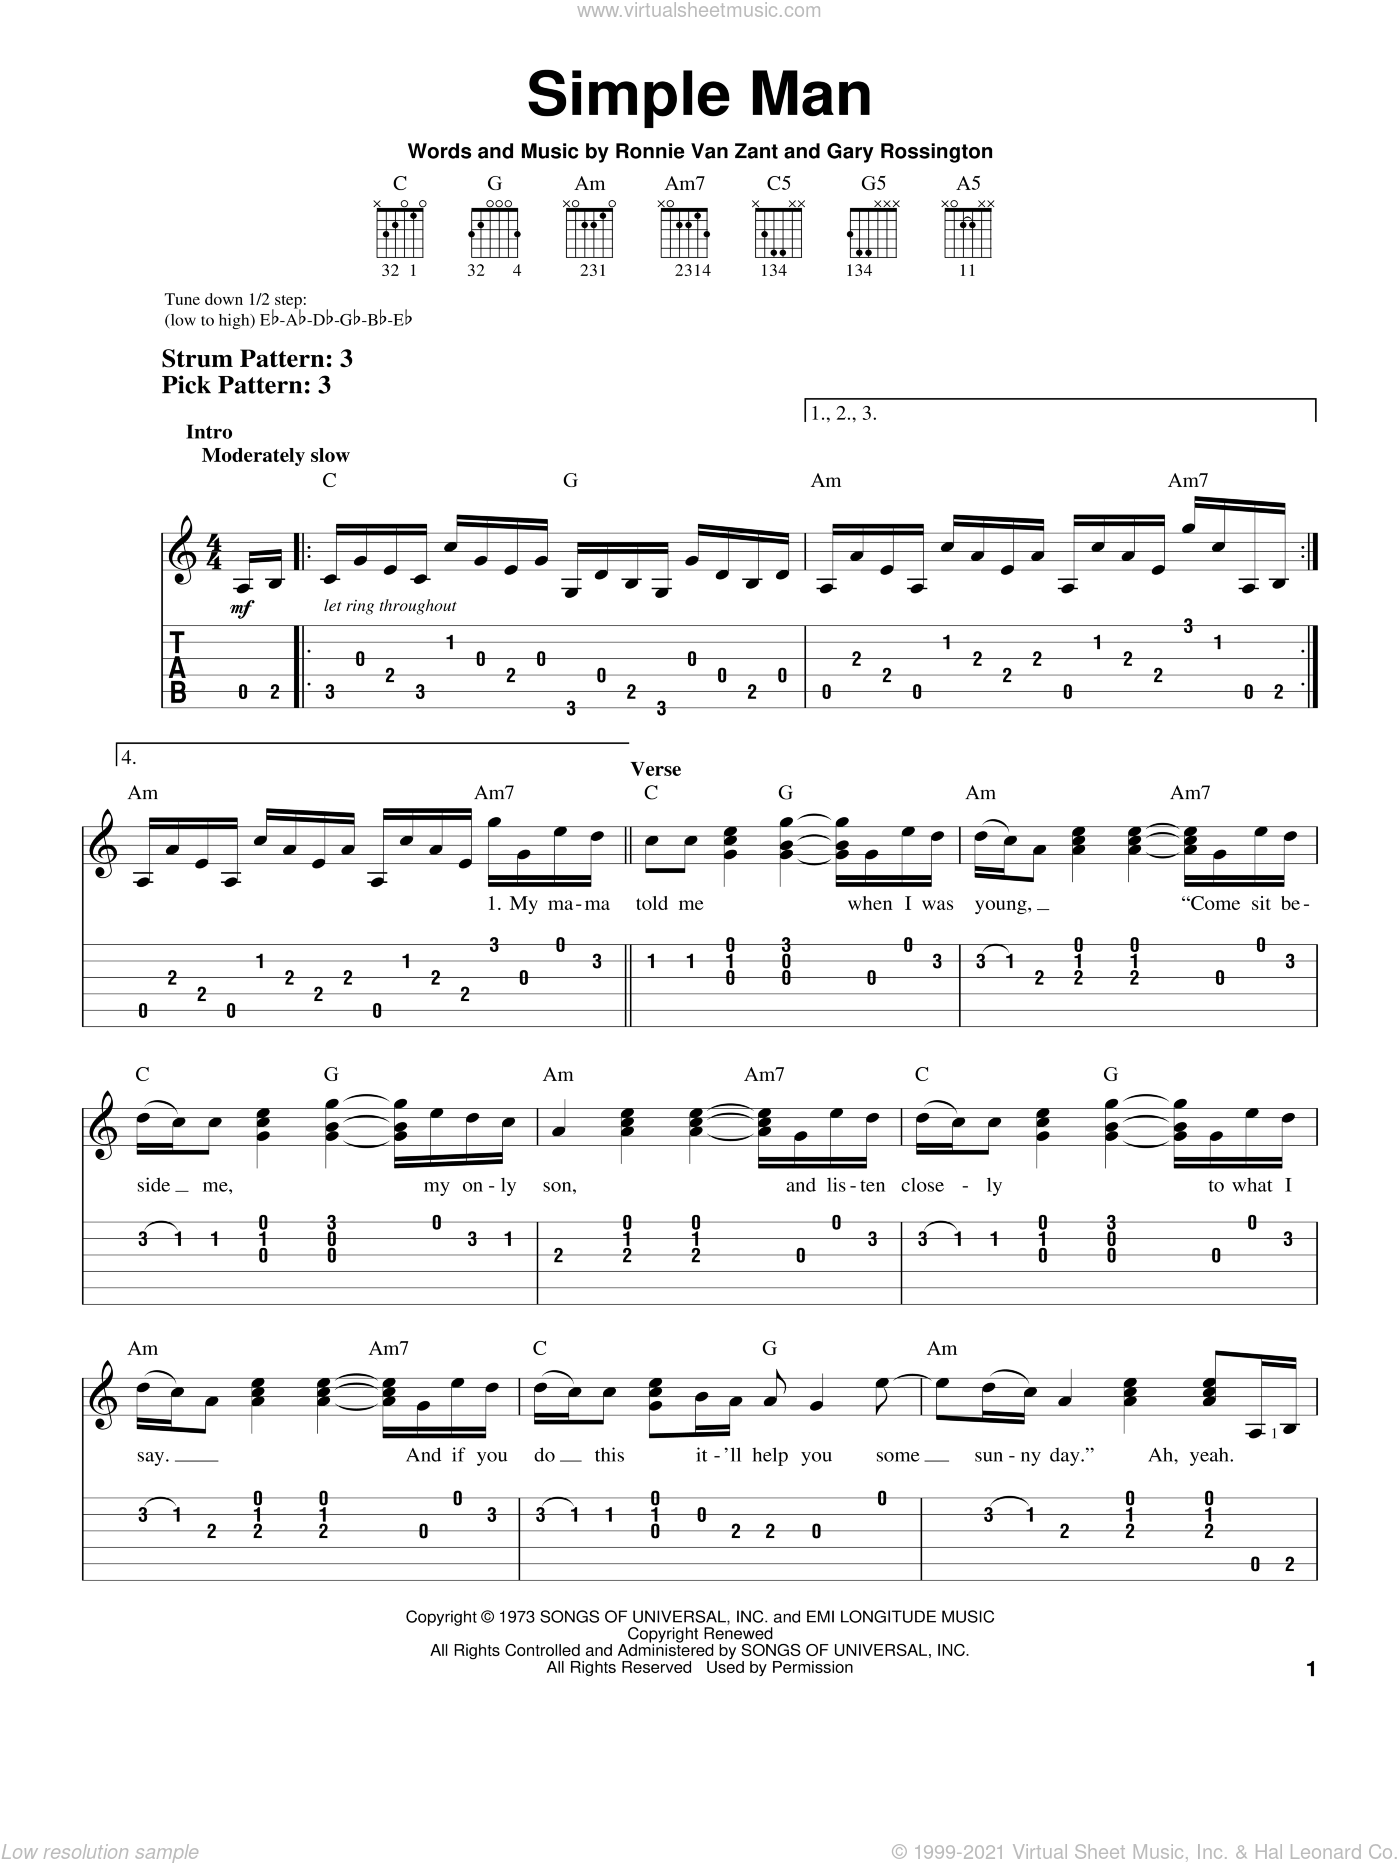 Simple Man sheet music for guitar solo (easy tablature) by Lynyrd Skynyrd, Shinedown, Gary Rossington and Ronnie Van Zant, easy guitar (easy tablature)